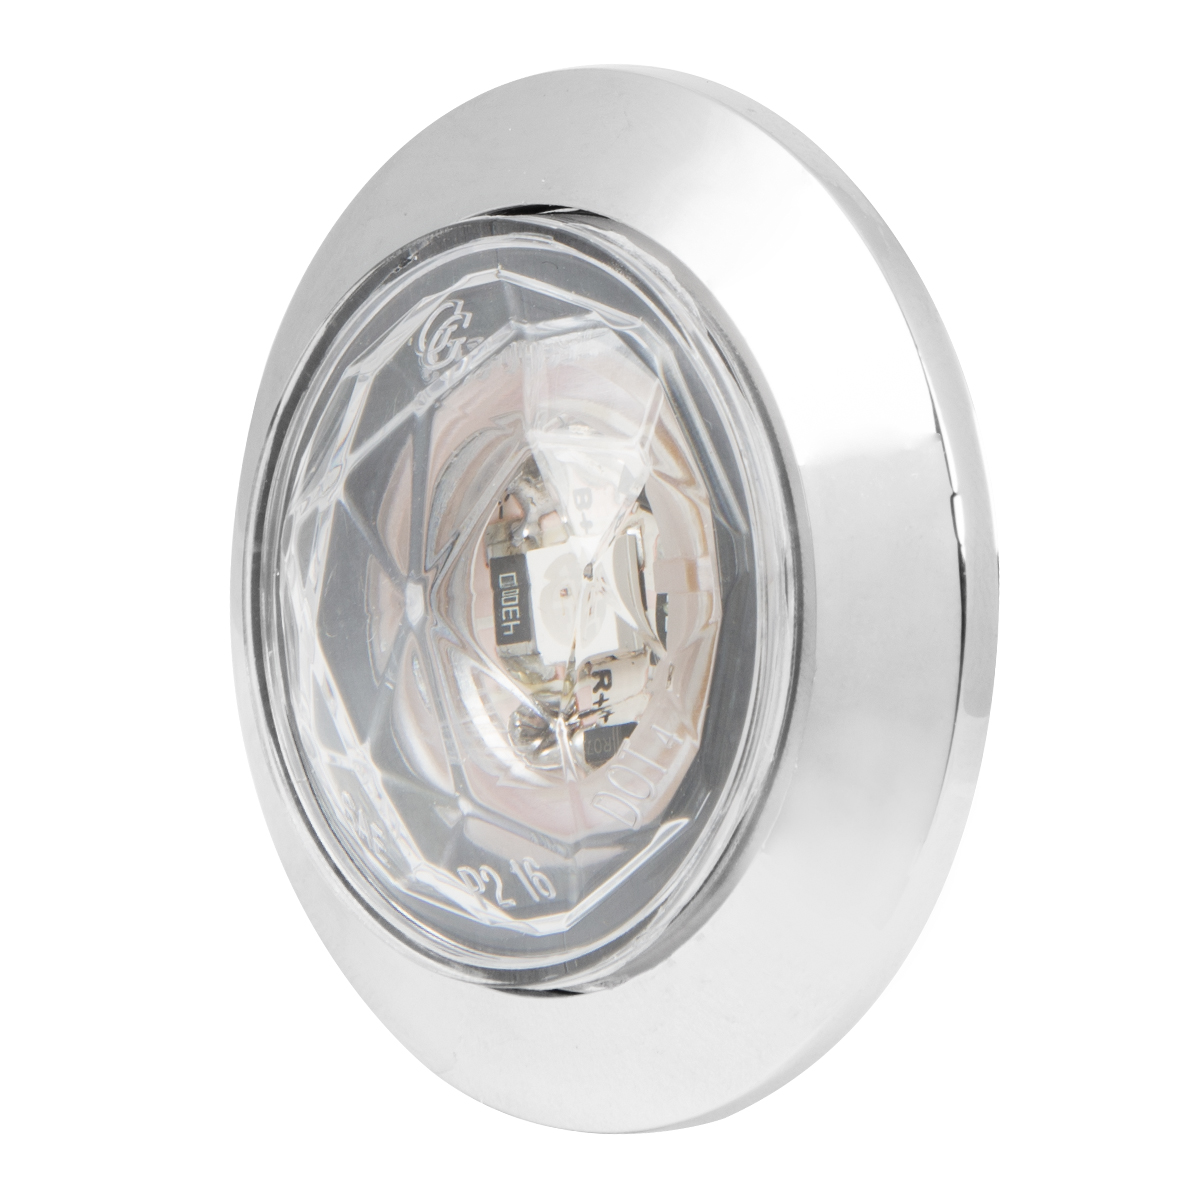 "1"" Dia. Dual Function Diamond Lens LED Light with Chrome Plastic Bezel"